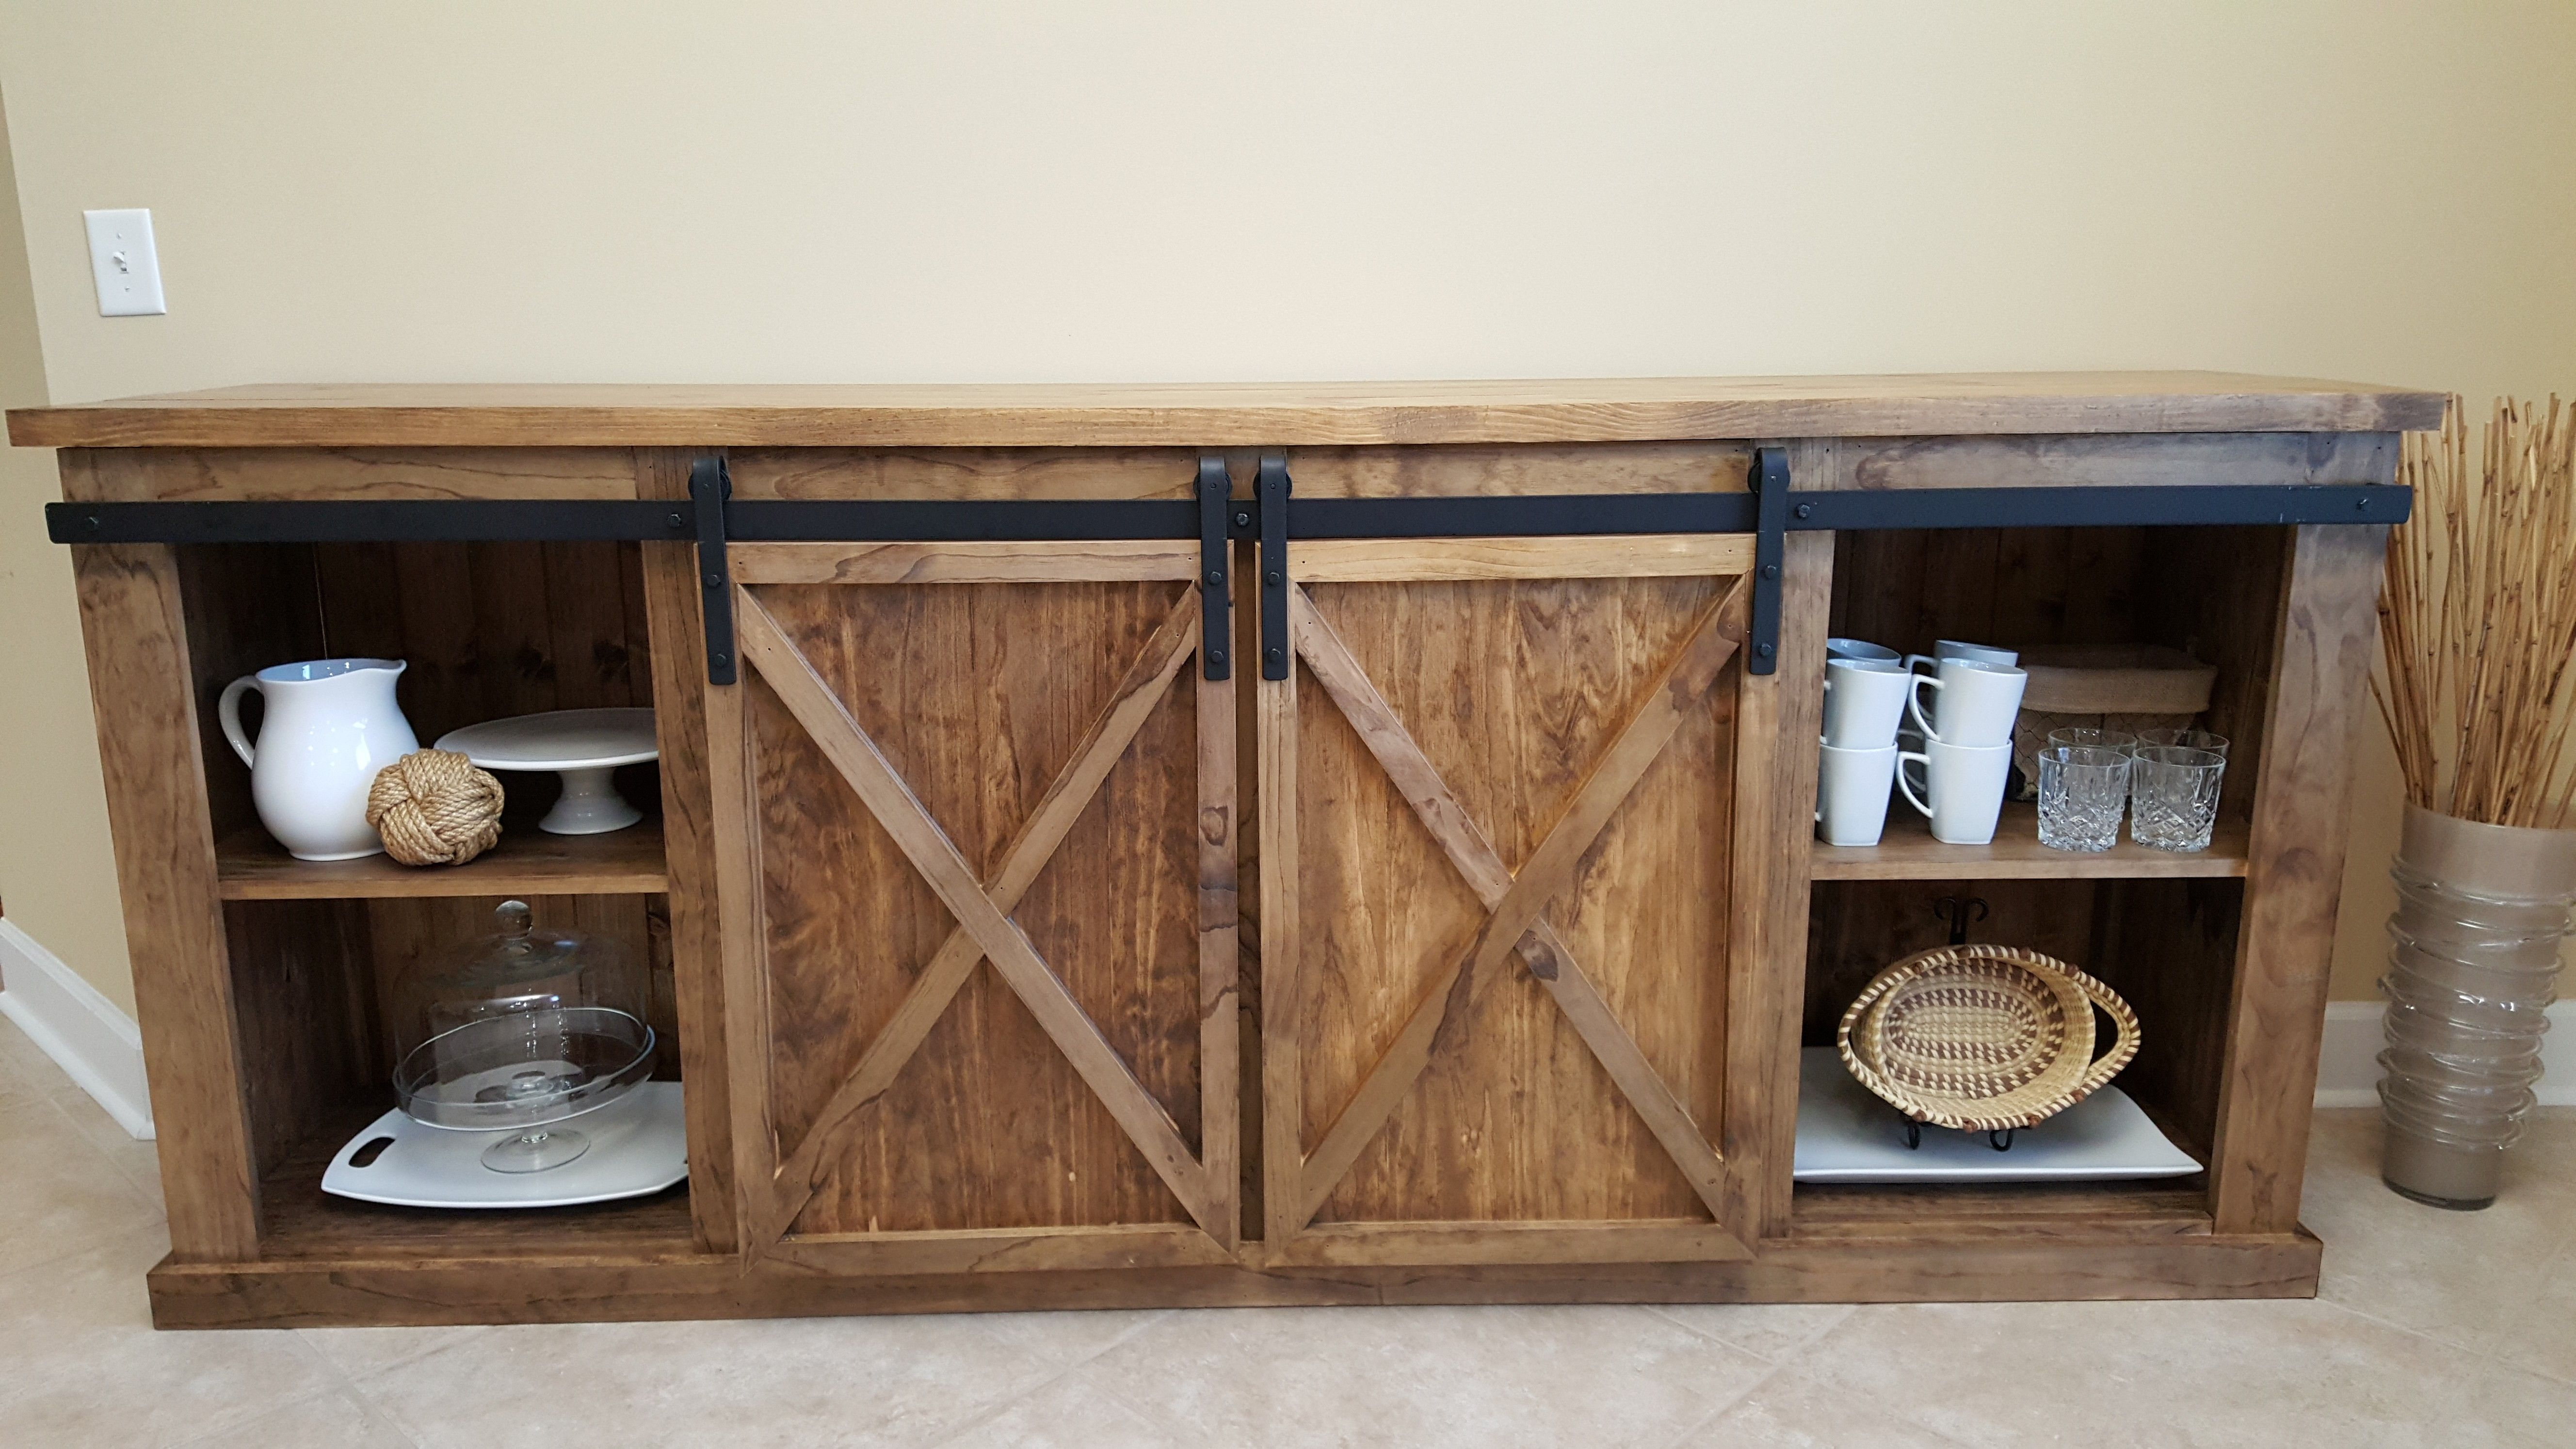 Barn Door Console Do It Yourself Home Projects From Ana White  # Muebles Do It Yourself